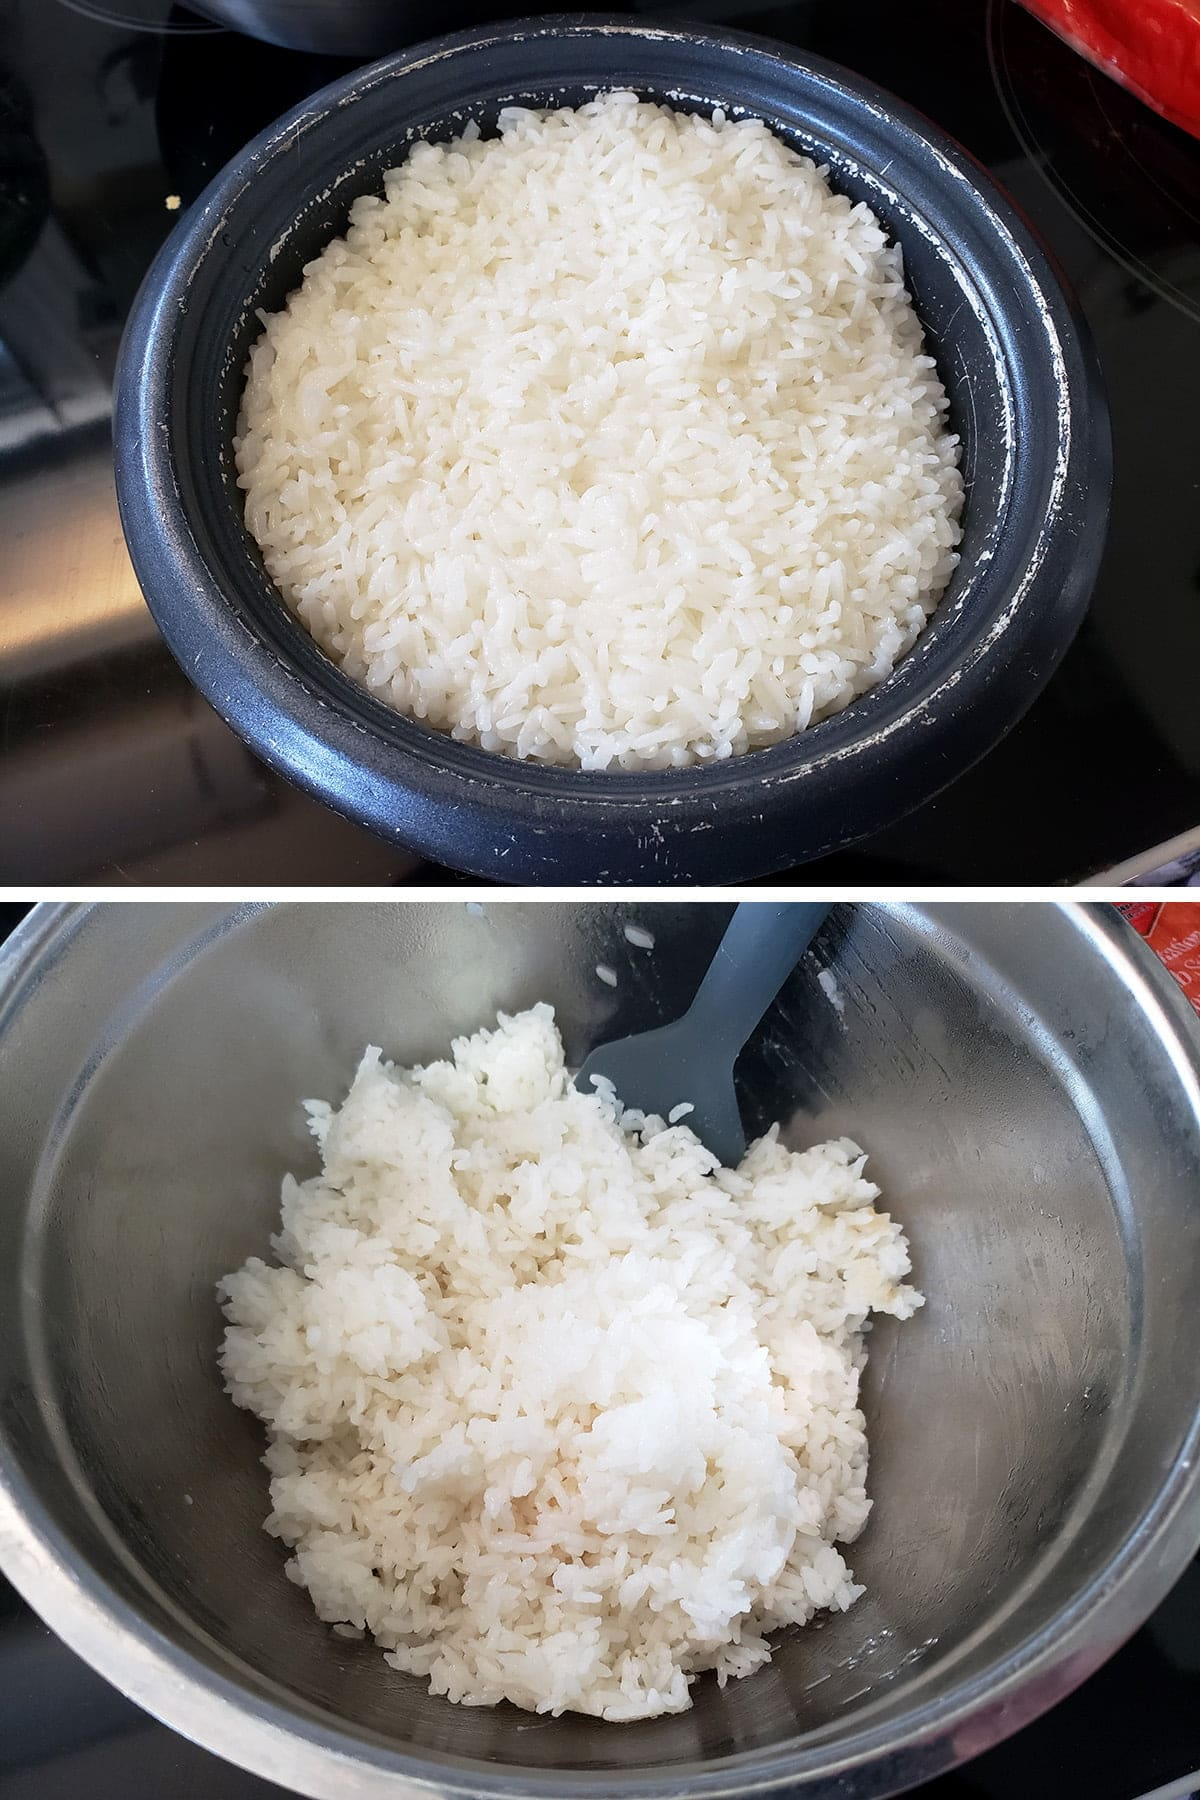 A two part compilation image showing rice in a rice cooker, then fluffed in a mixing bowl.